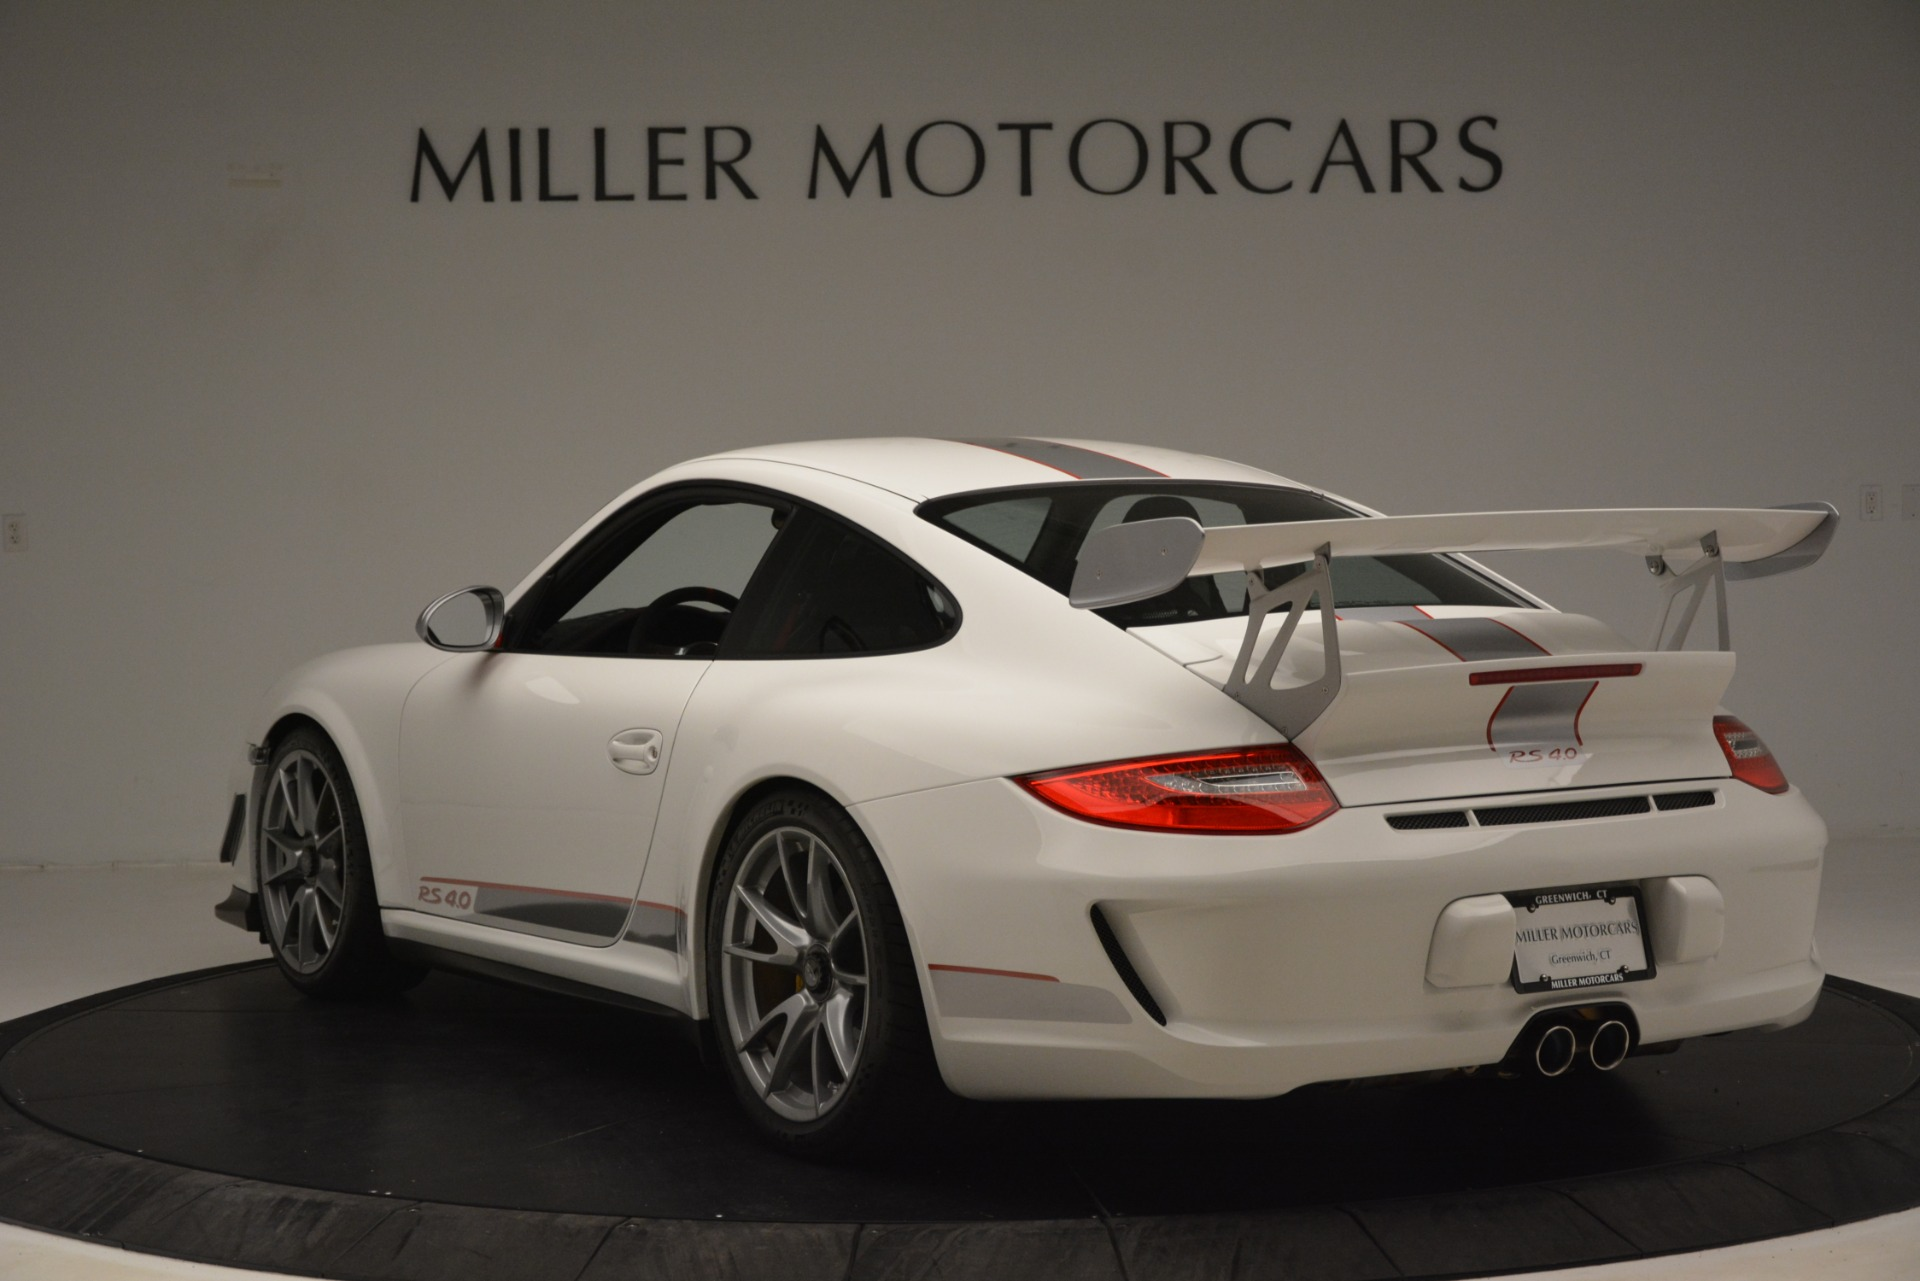 Used 2011 Porsche 911 GT3 RS 4.0 For Sale In Greenwich, CT 3188_p5